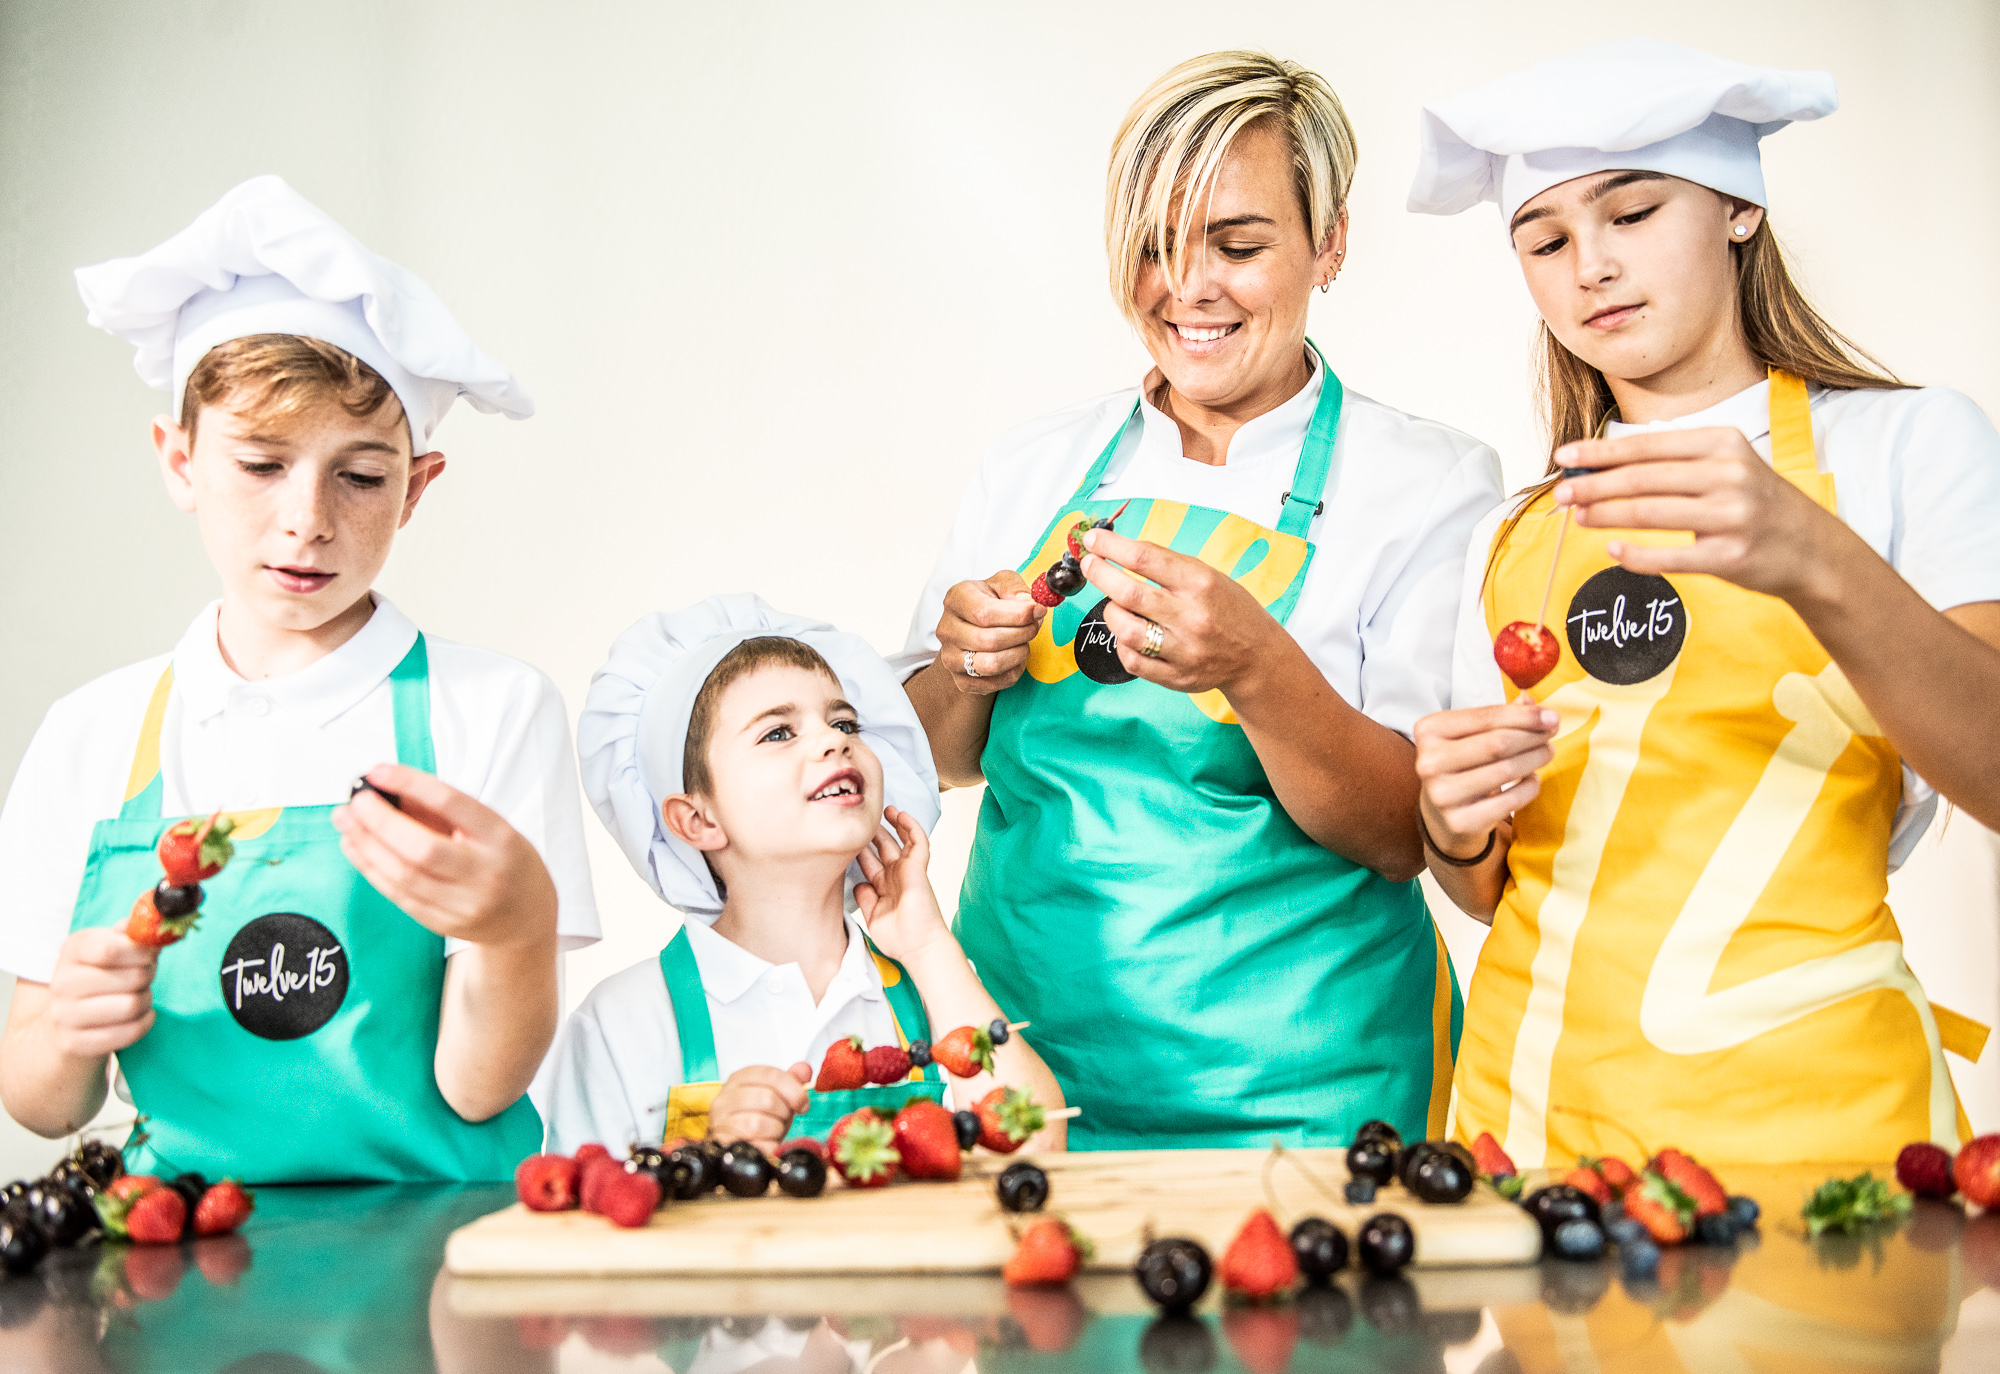 A Twelve15 staff member and three kids make healthy fruit kebabs together.